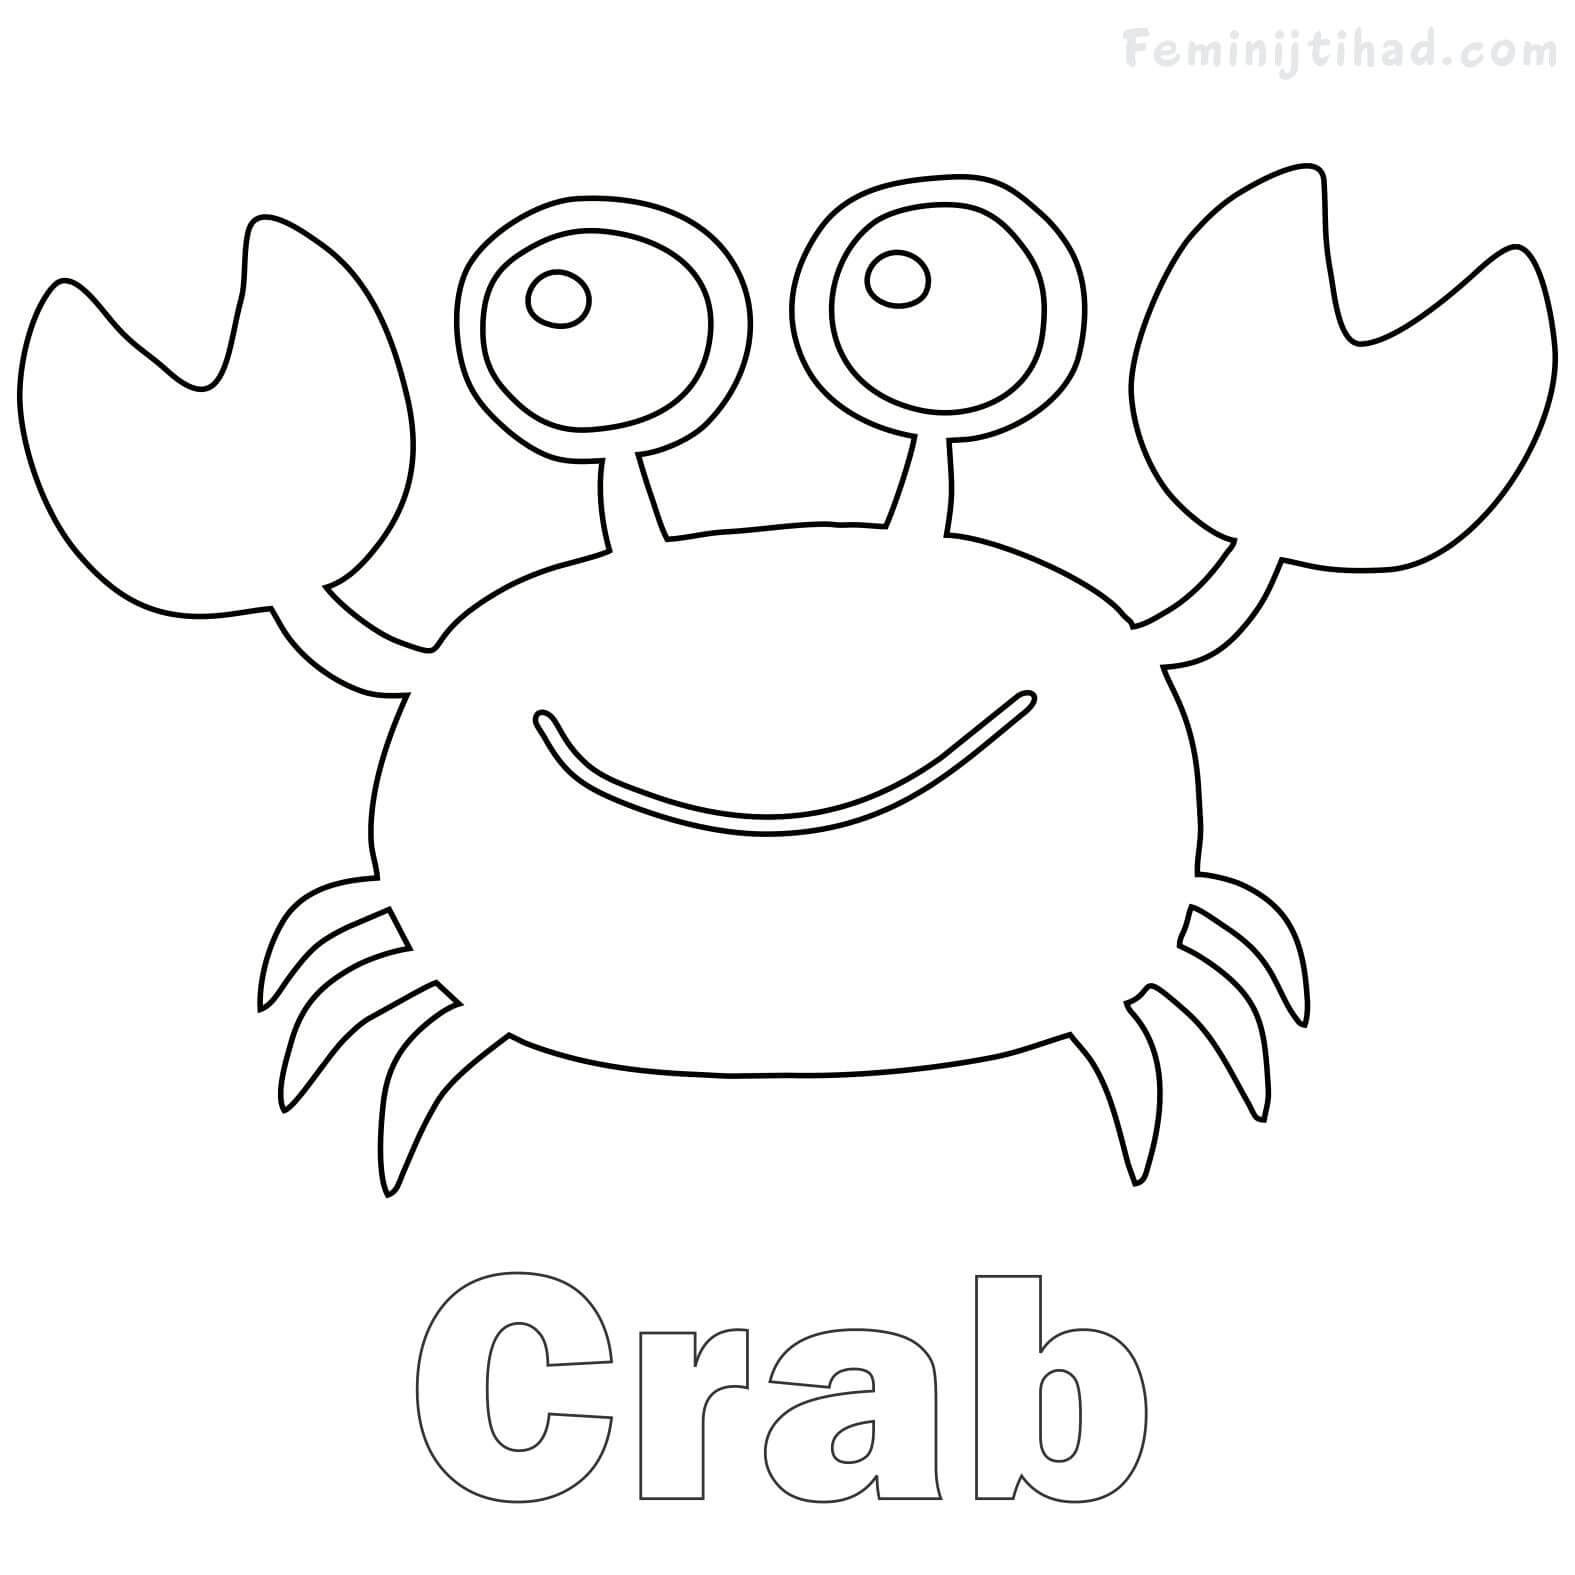 Crane Coloring Pages Printable Coloring Pages Super Coloring Pages Fish Coloring Page